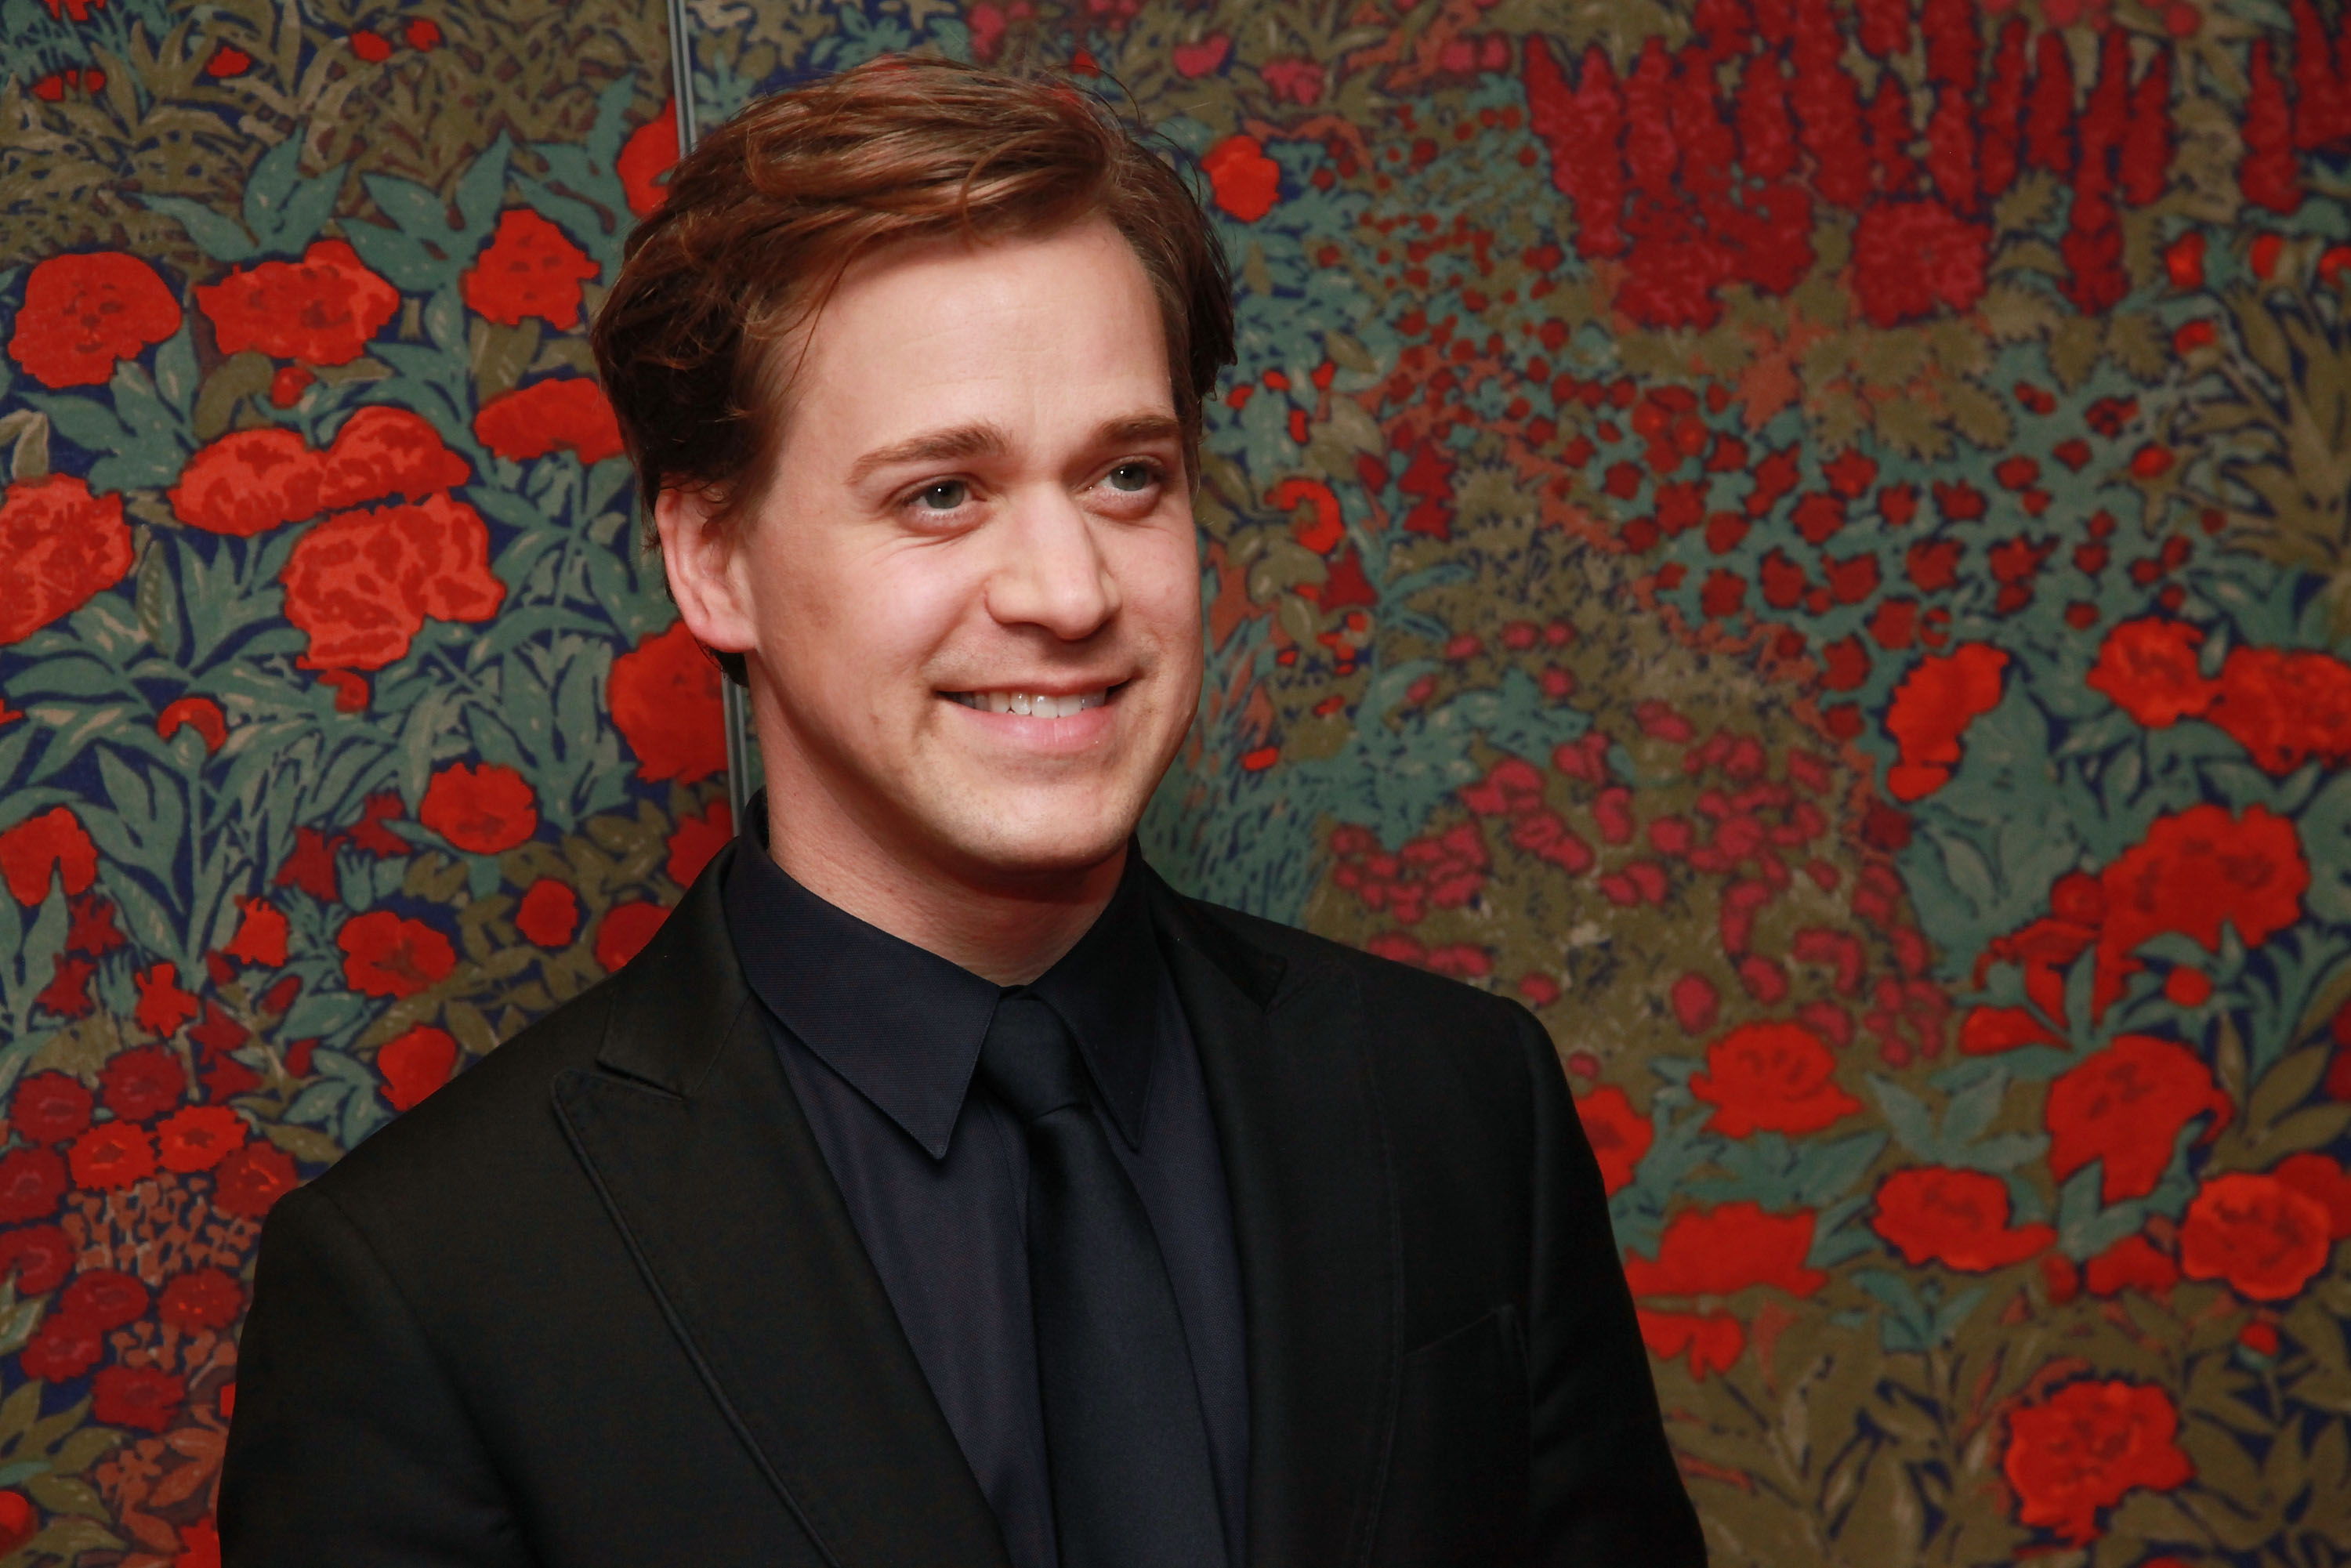 TR Knight On Portraying Conflicted Characters: 'Those Are The Most Interesting People To Play'